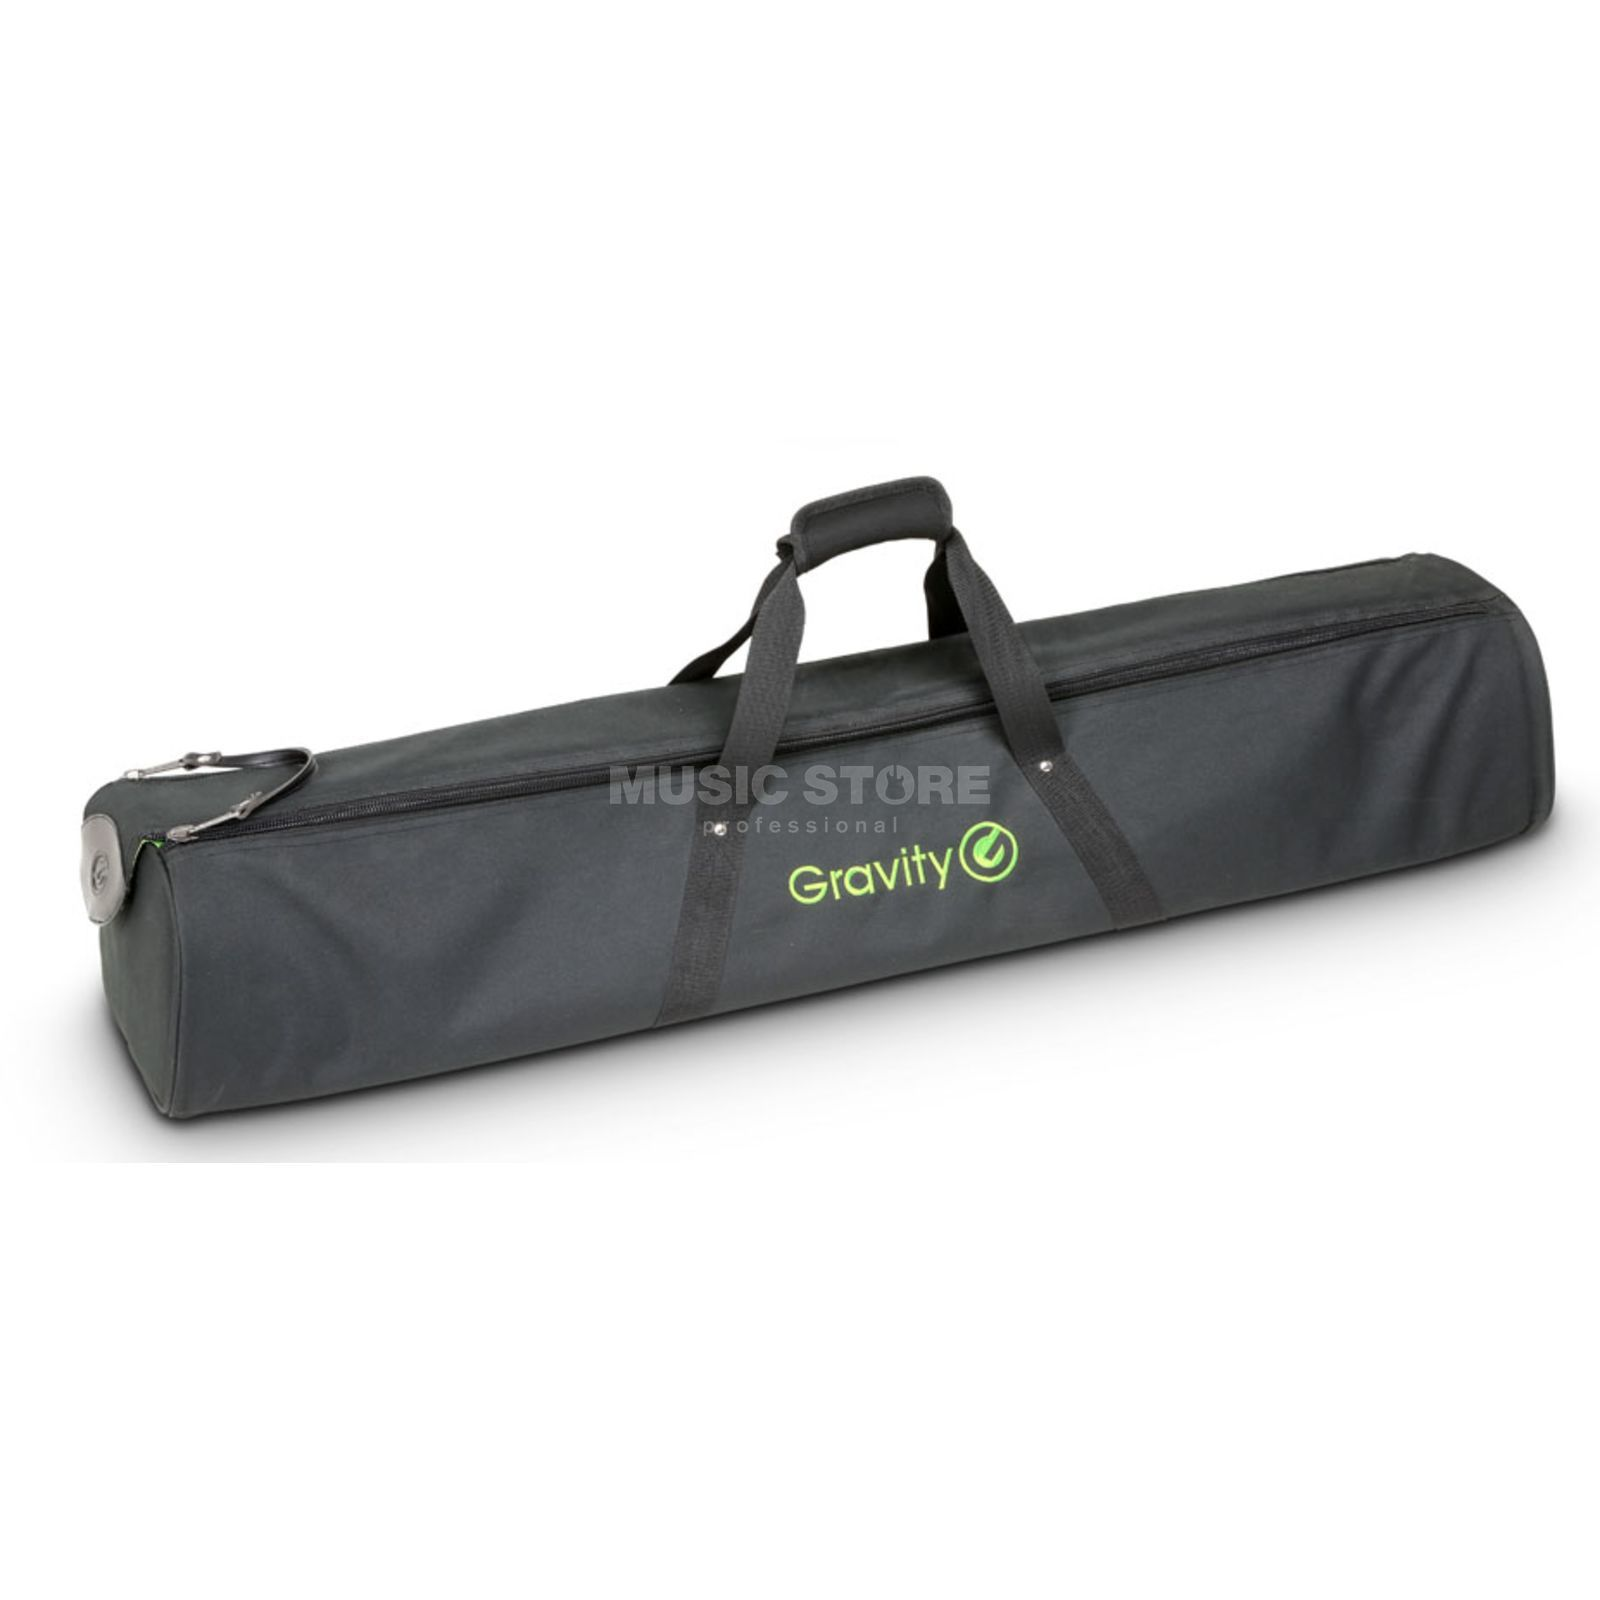 Gravity BGSS 2 B Transport Bag Produktbild